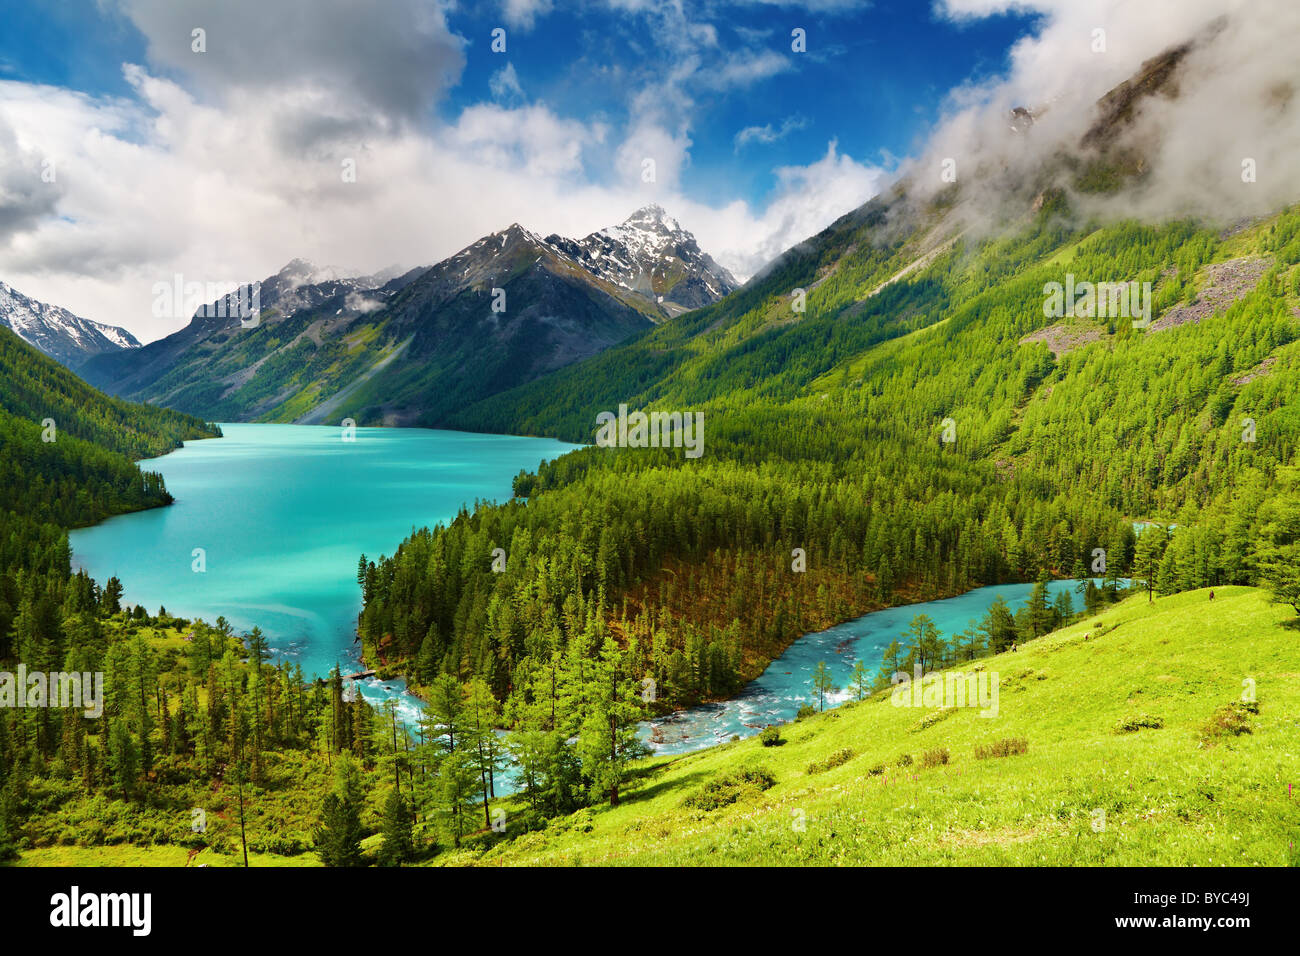 Beautiful turquoise lake Kucherlinskoe in Altai mountains - Stock Image